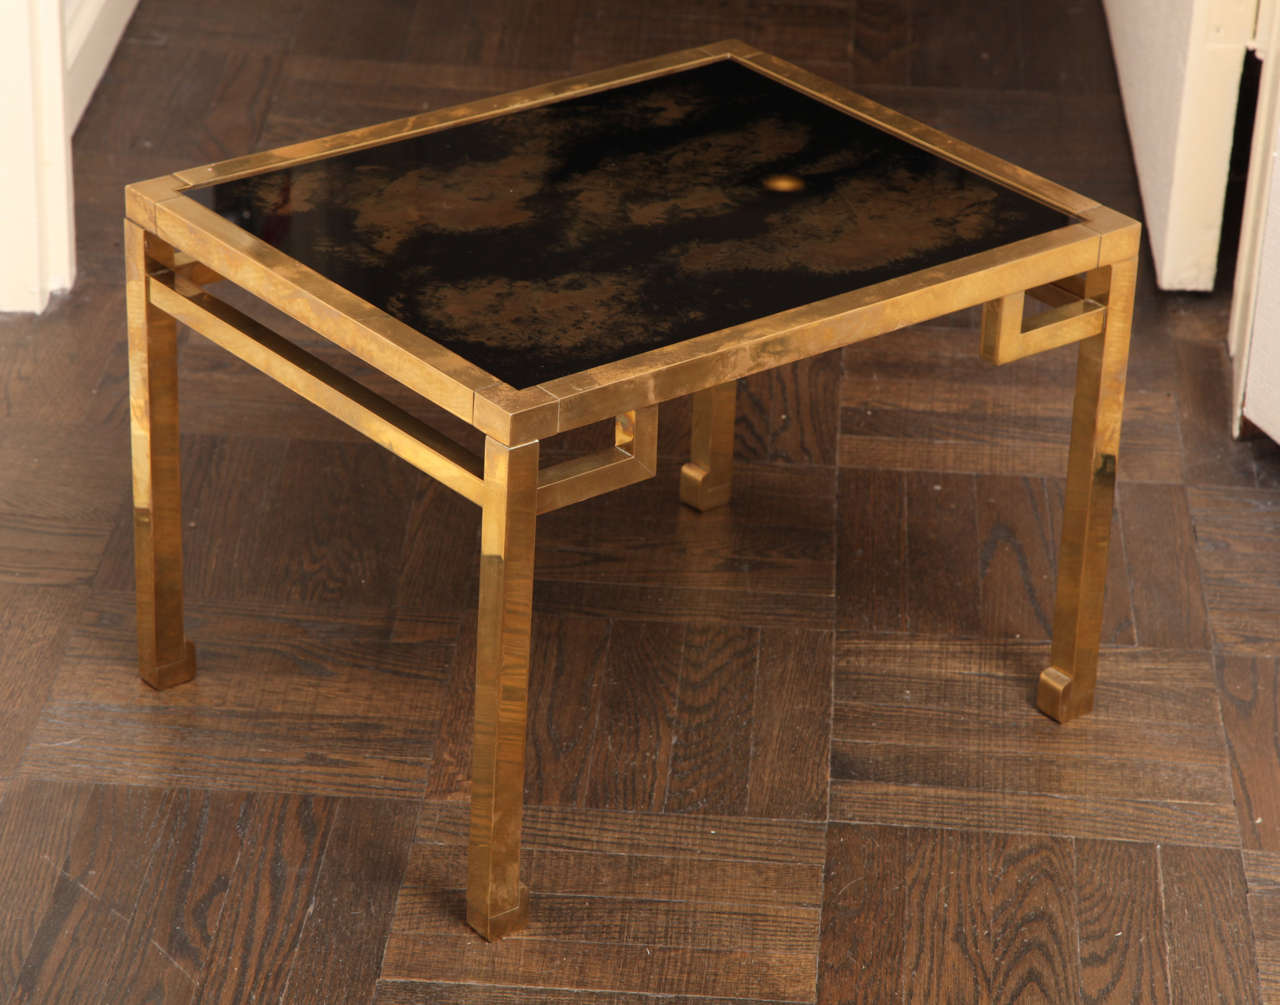 301 moved permanently for Small gold side table